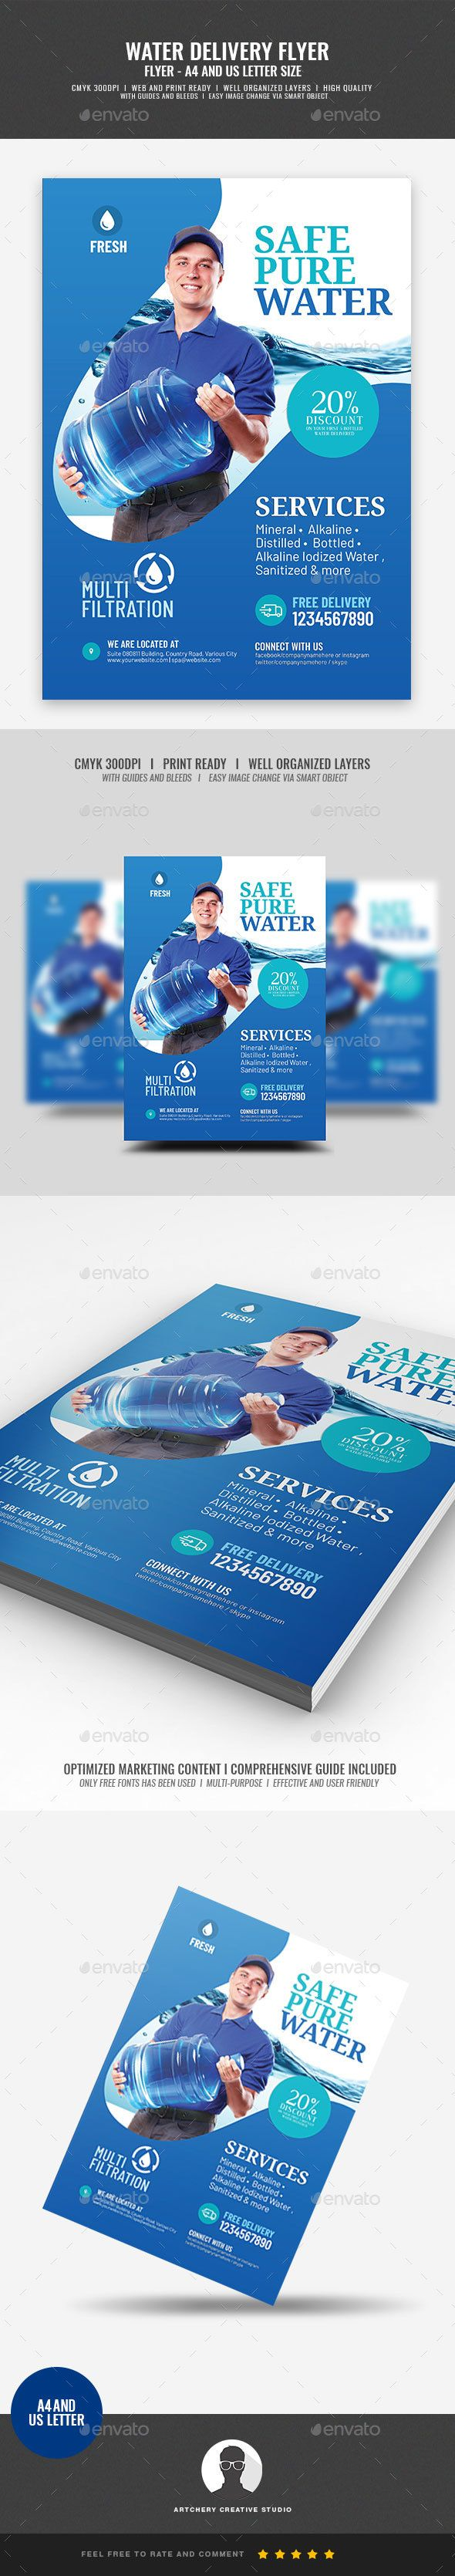 Water Refilling Station Flyer Template Psd